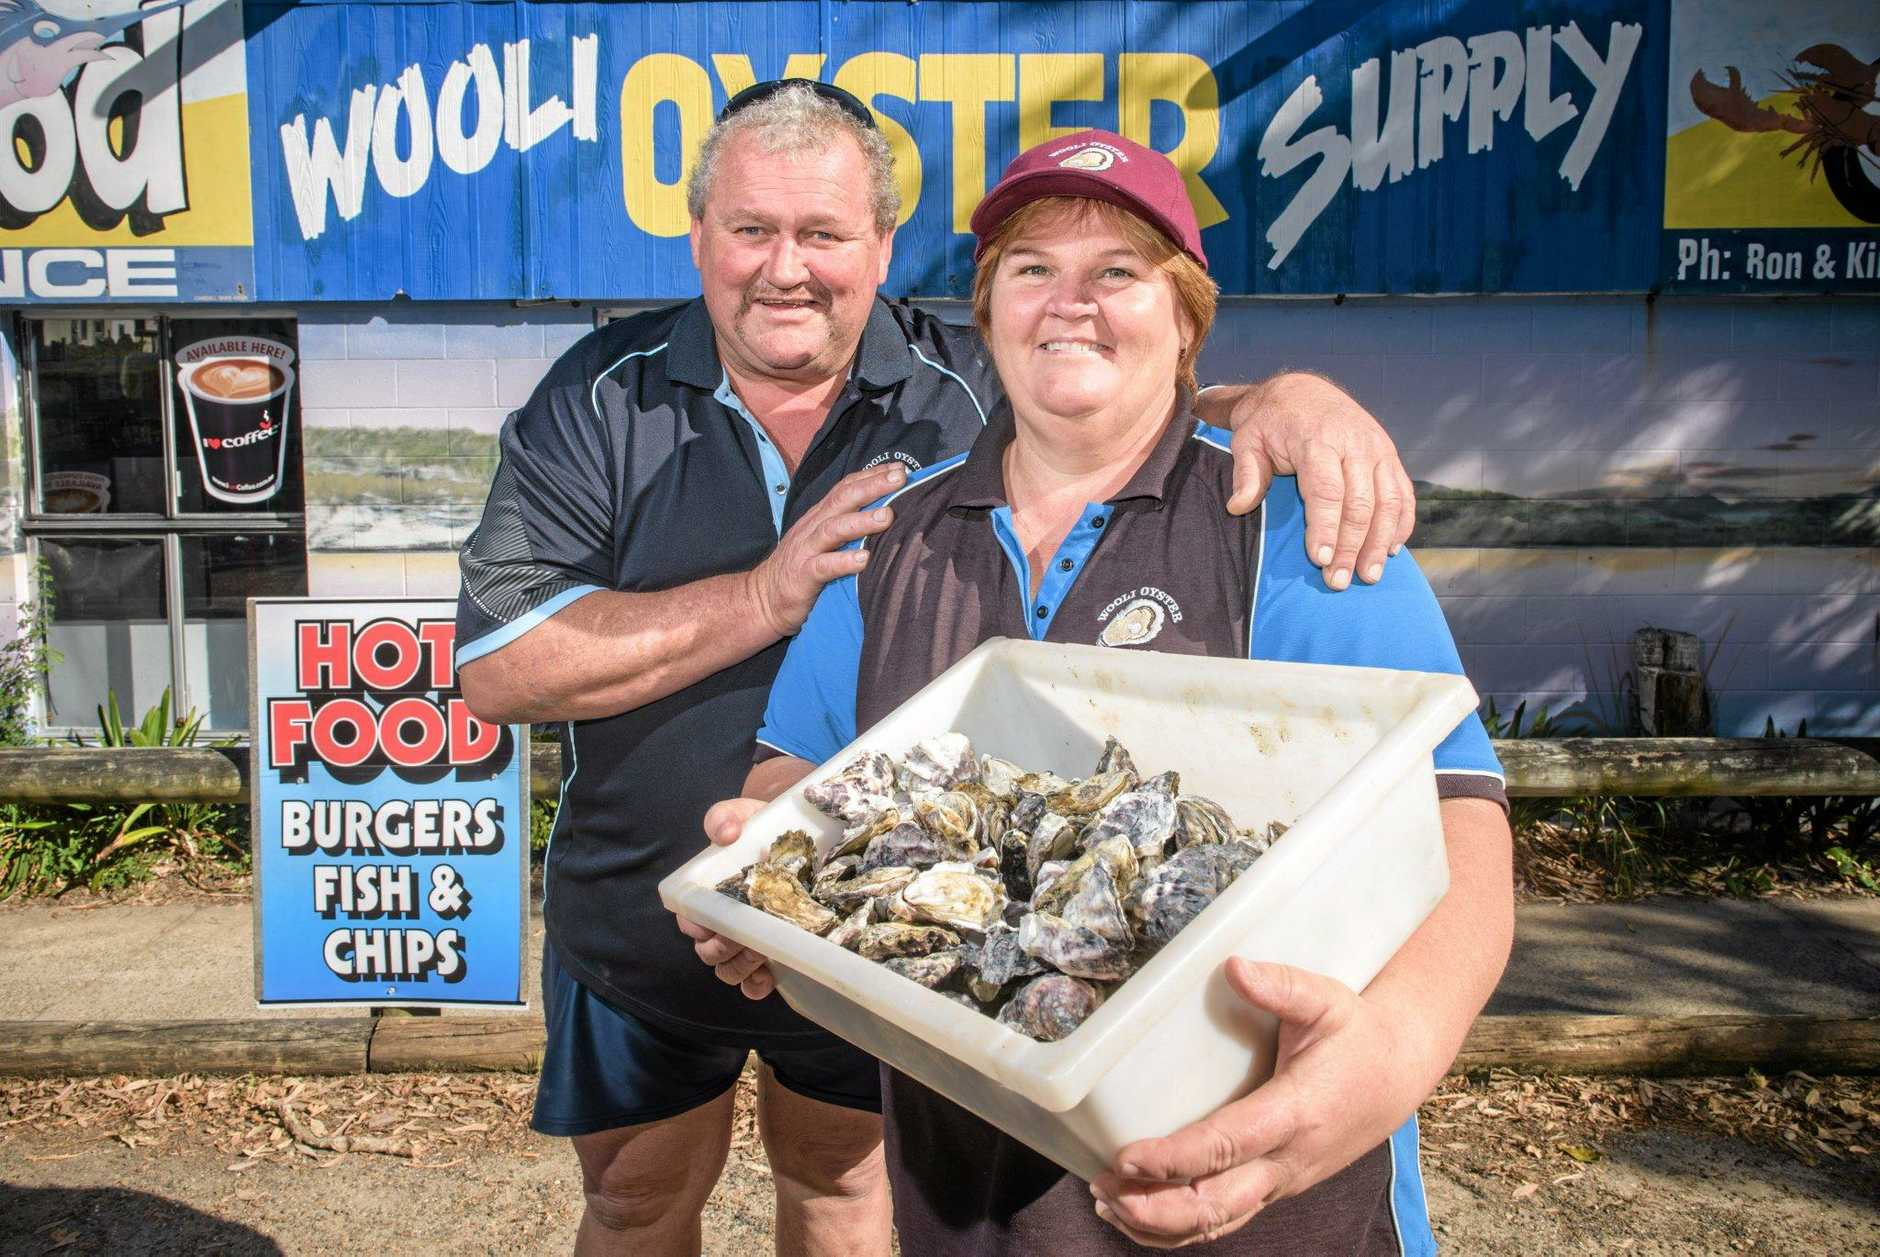 Ron and Jan Guinea of Wooli Oyster Supply have decided to keep it local and only sell oysters through shops in Wooli.